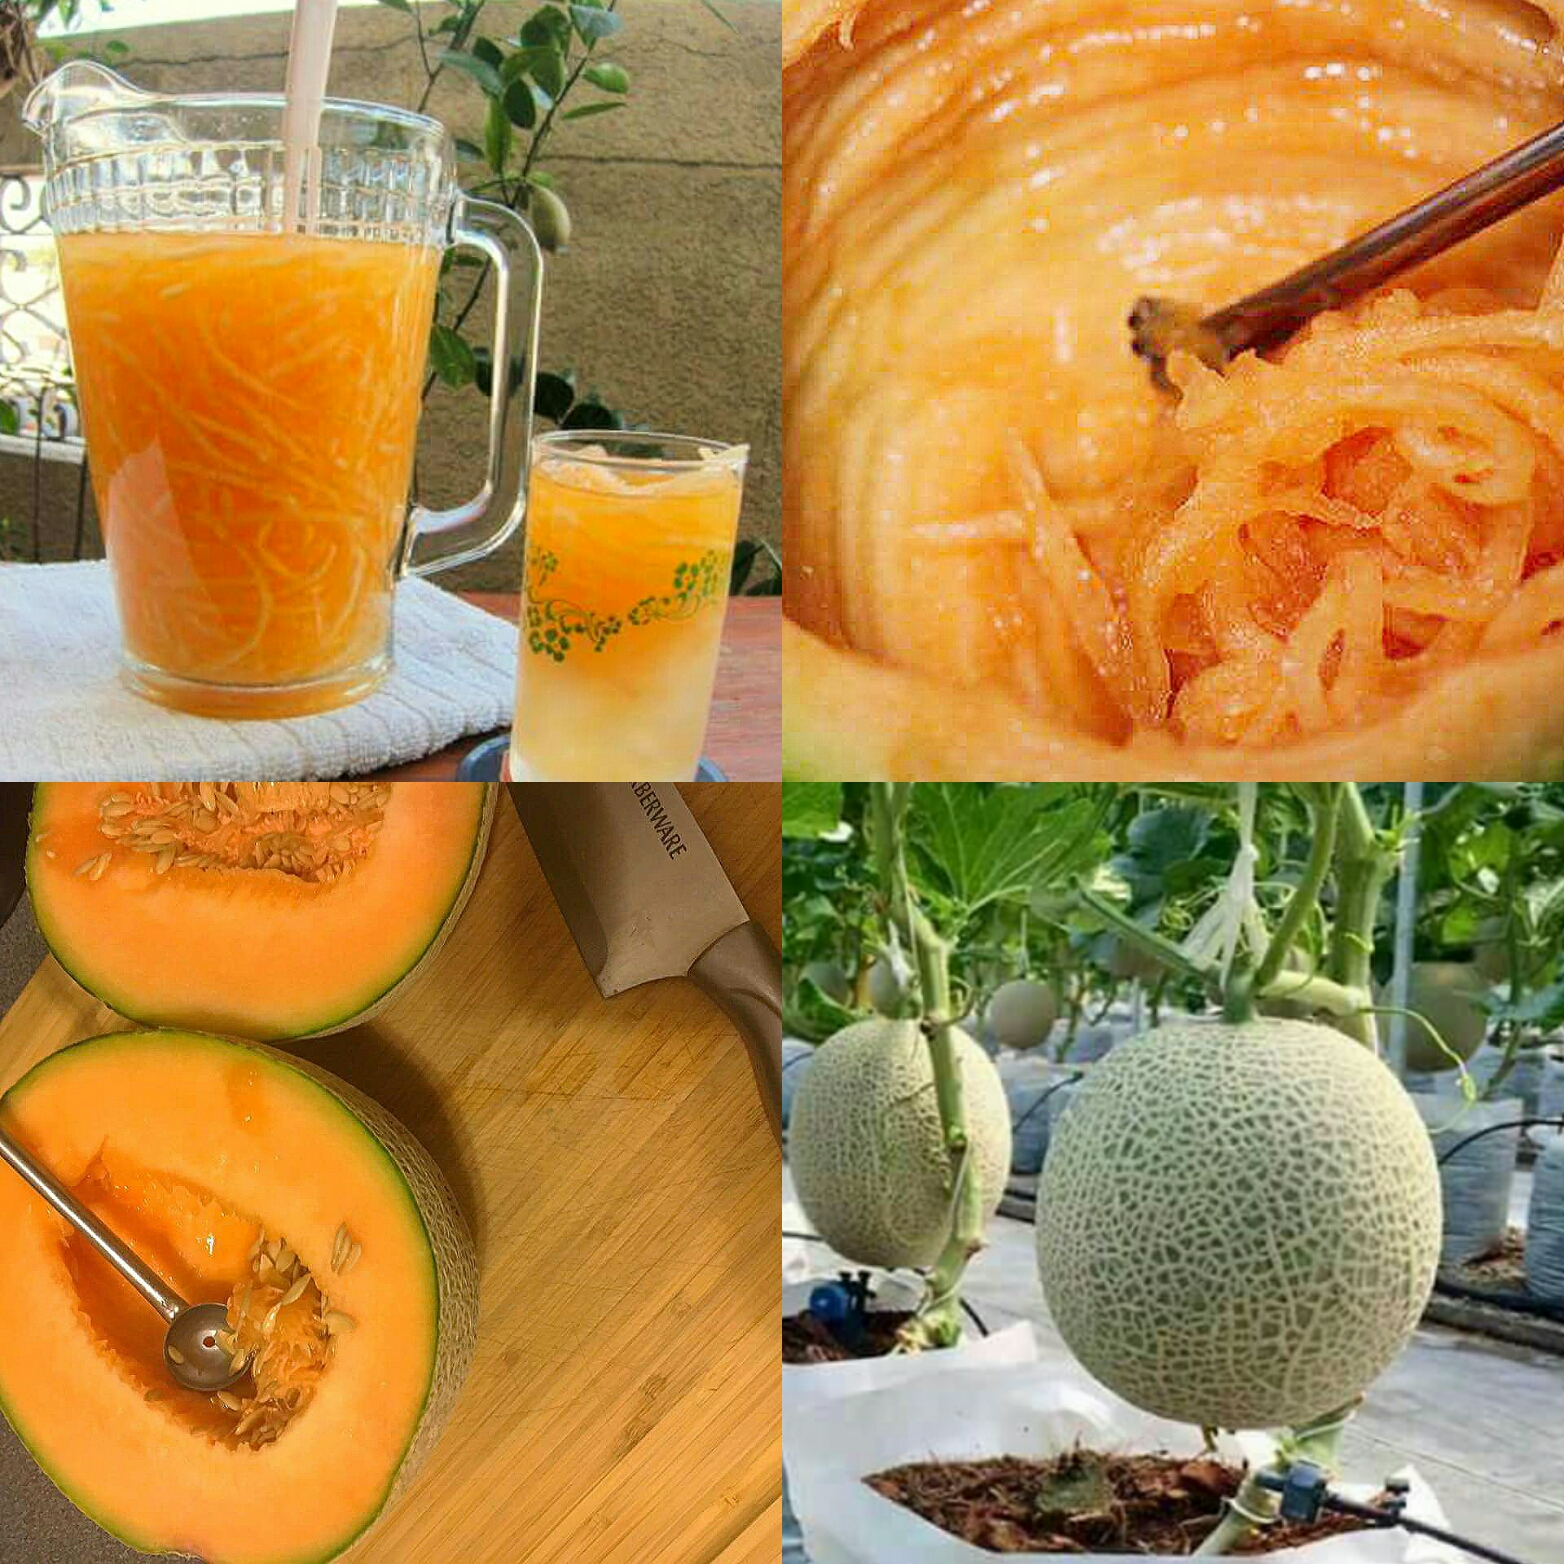 Melon Sa Malamig Cantaloupe Juice Mama S Guide Recipes This juice is very easy to make. melon sa malamig cantaloupe juice